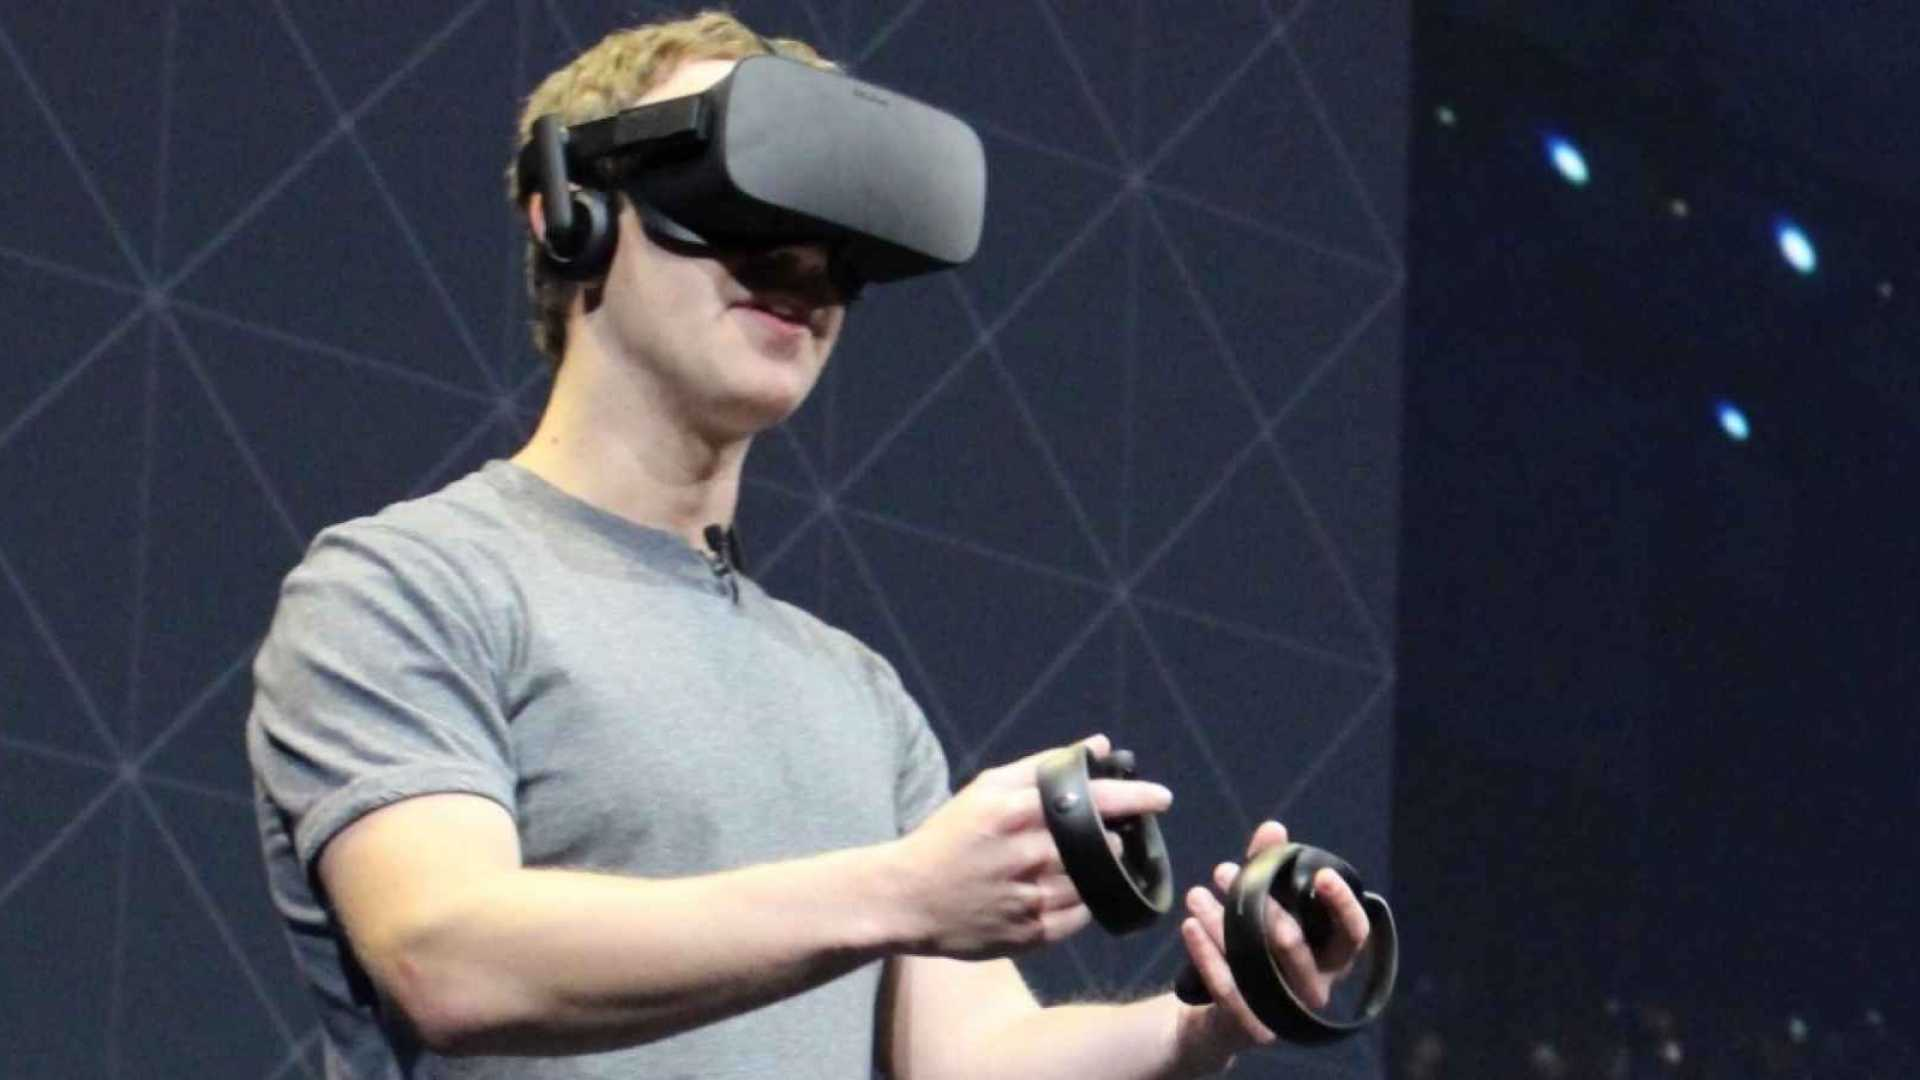 Facebook Just Revealed the New Oculus Headset. Here's How It Can Beat Google